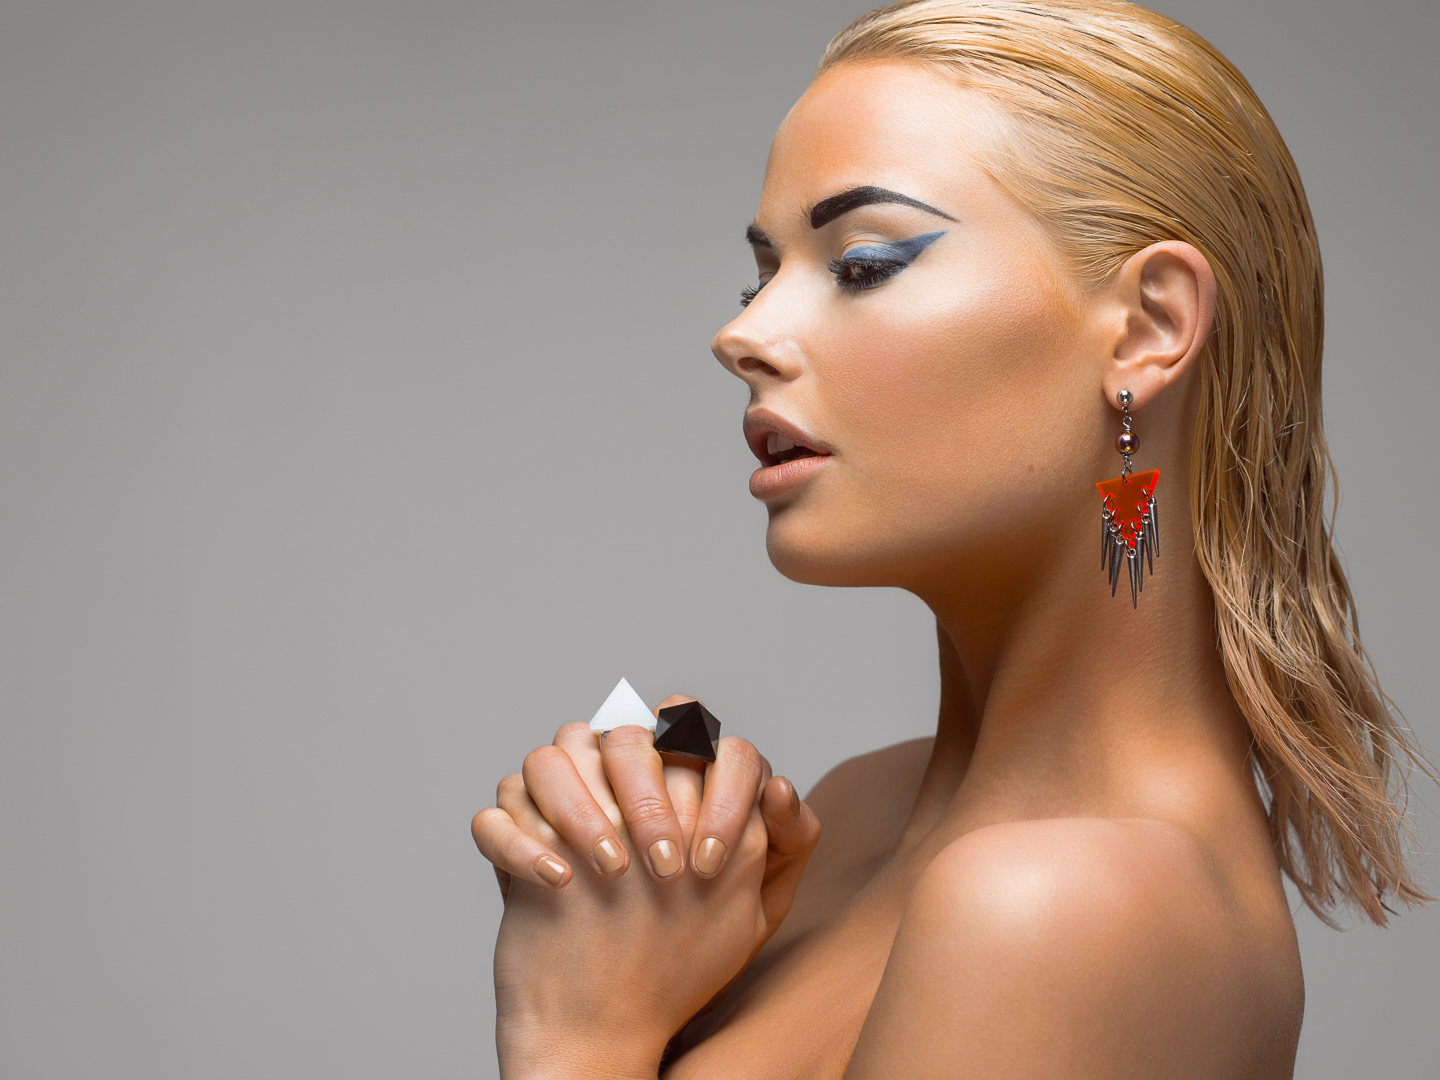 Regal Rose SS12 Campaign Photoshoot Fashion Jewellery Amy Wilson Jay McLaughlin